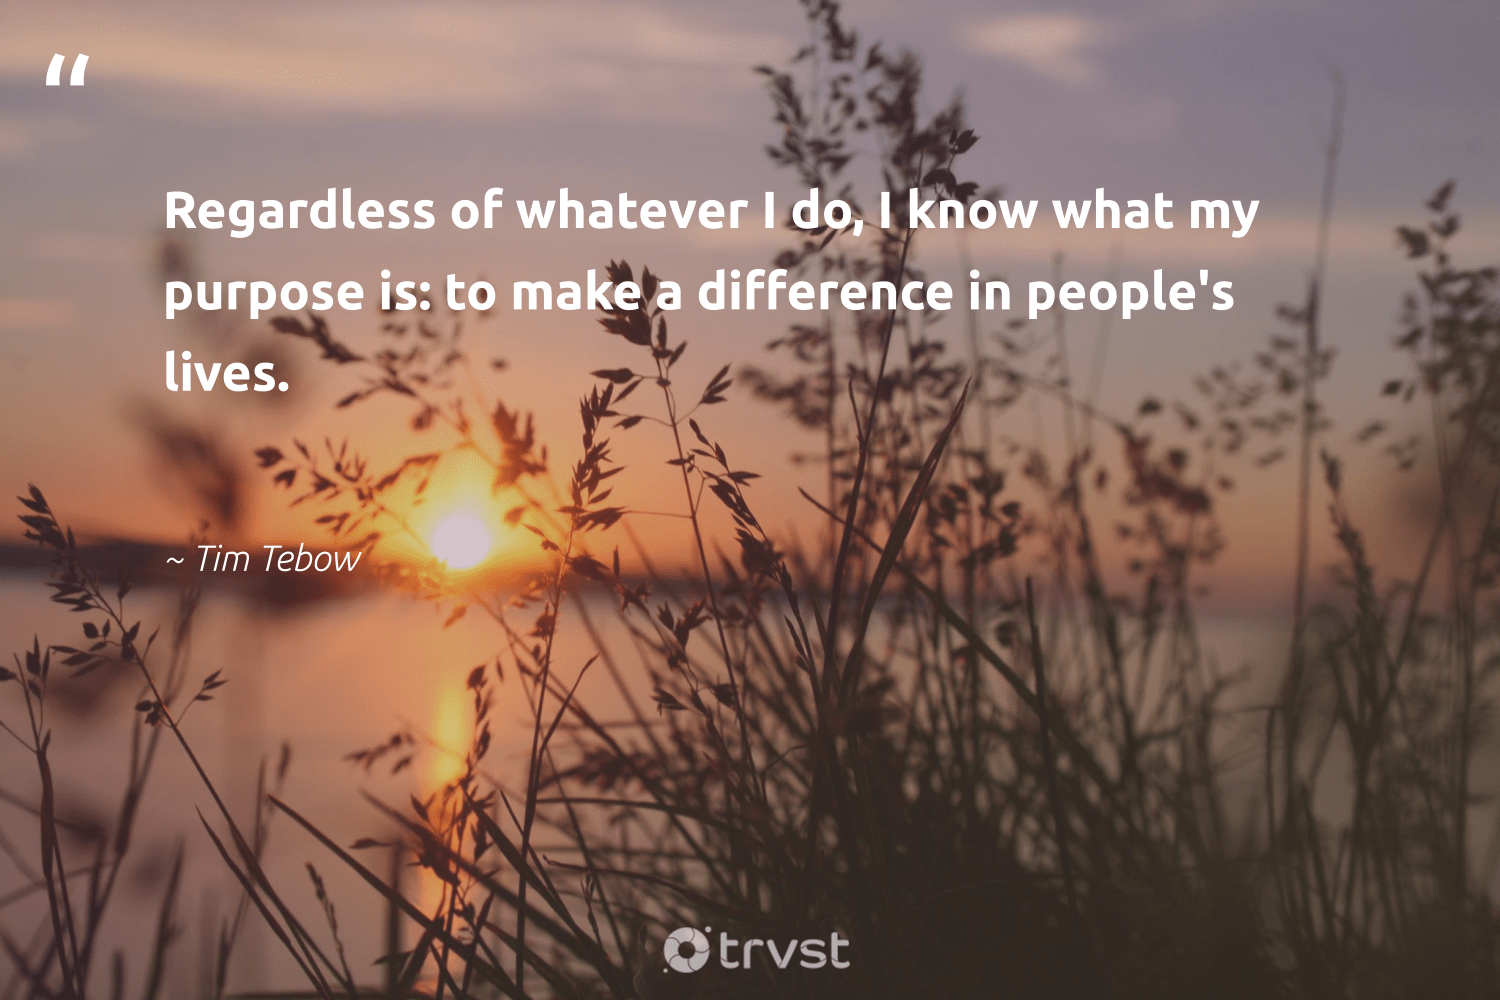 """""""Regardless of whatever I do, I know what my purpose is: to make a difference in people's lives.""""  - Tim Tebow #trvst #quotes #purpose #makeadifference #findingpupose #nevergiveup #changemakers #dotherightthing #findpurpose #togetherwecan #health #gogreen"""